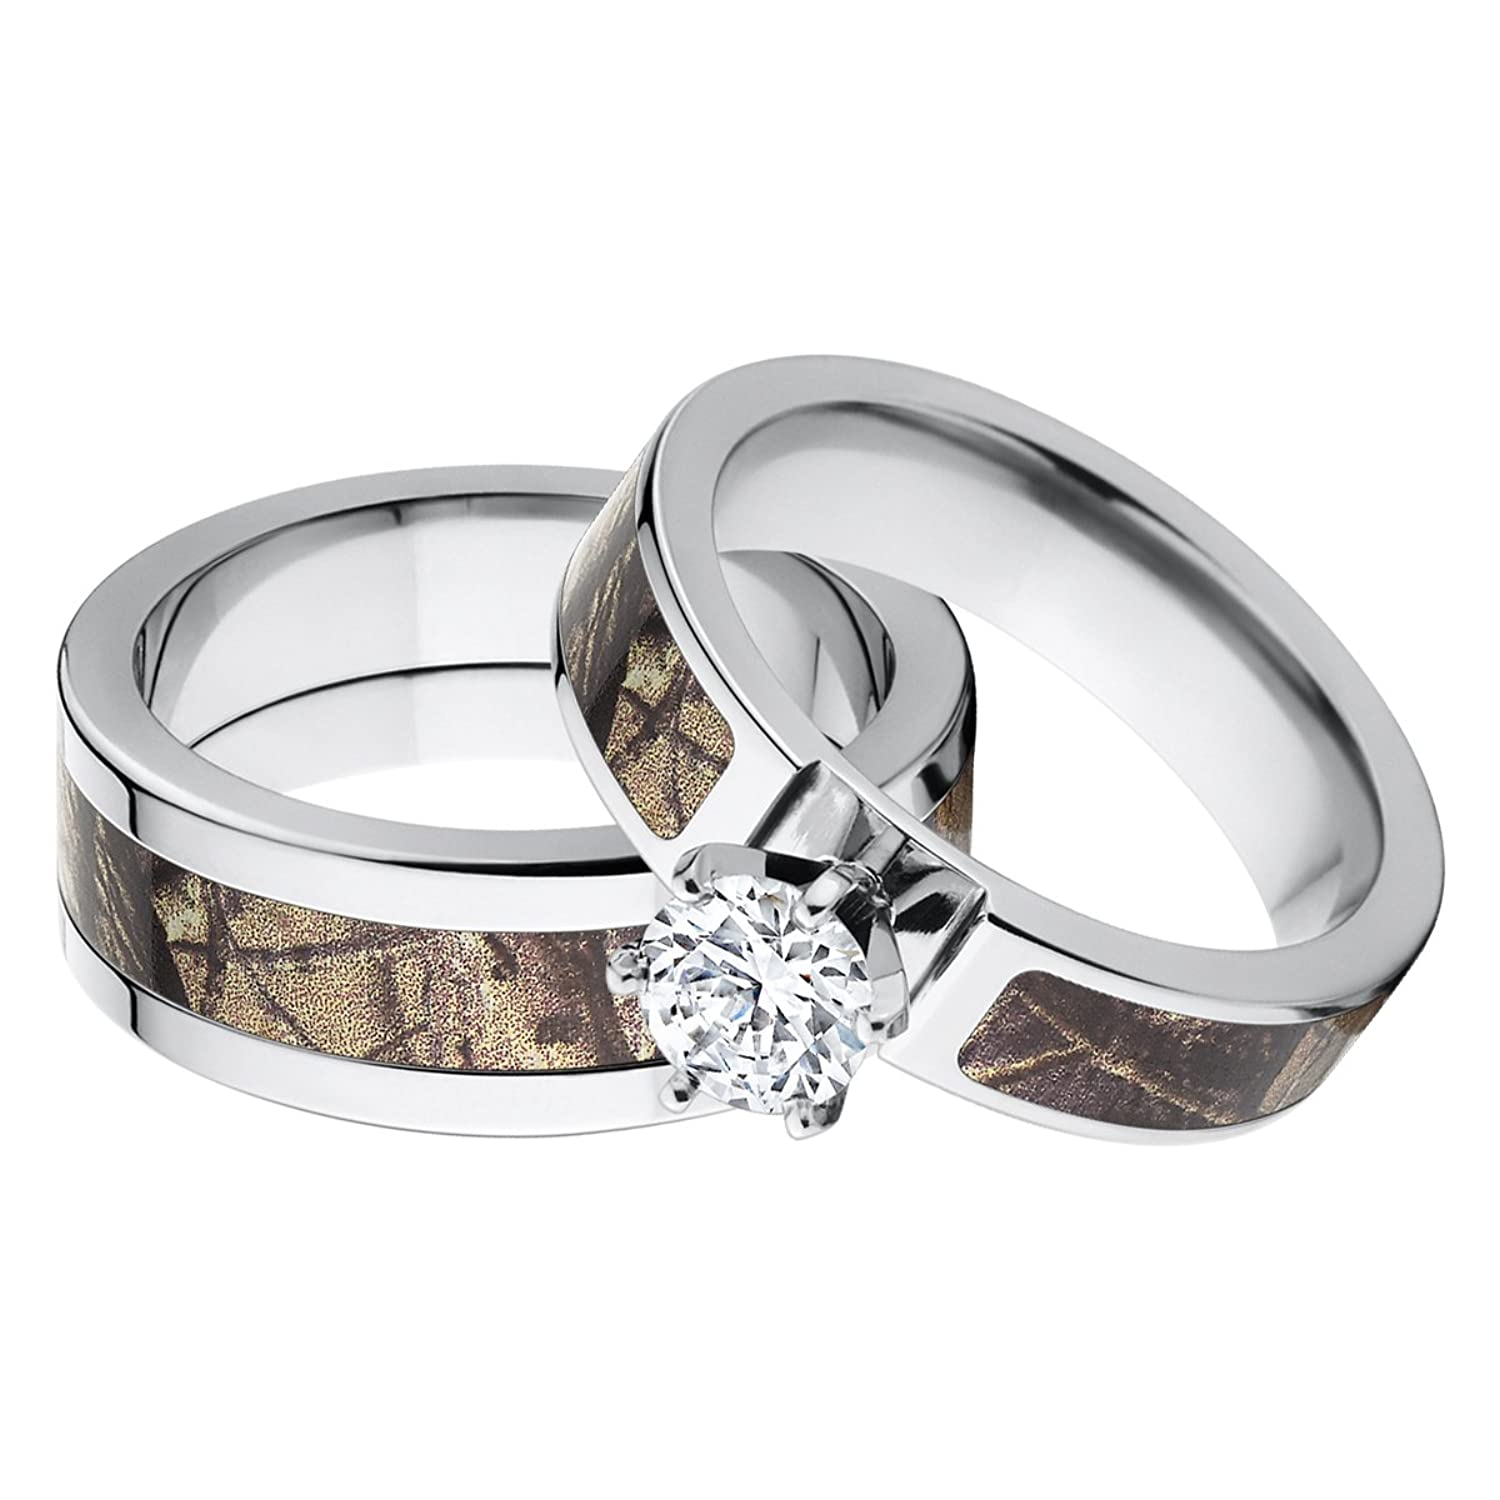 amazoncom his and hers matching realtree ap camouflage wedding ring set jewelry - Real Diamond Wedding Rings